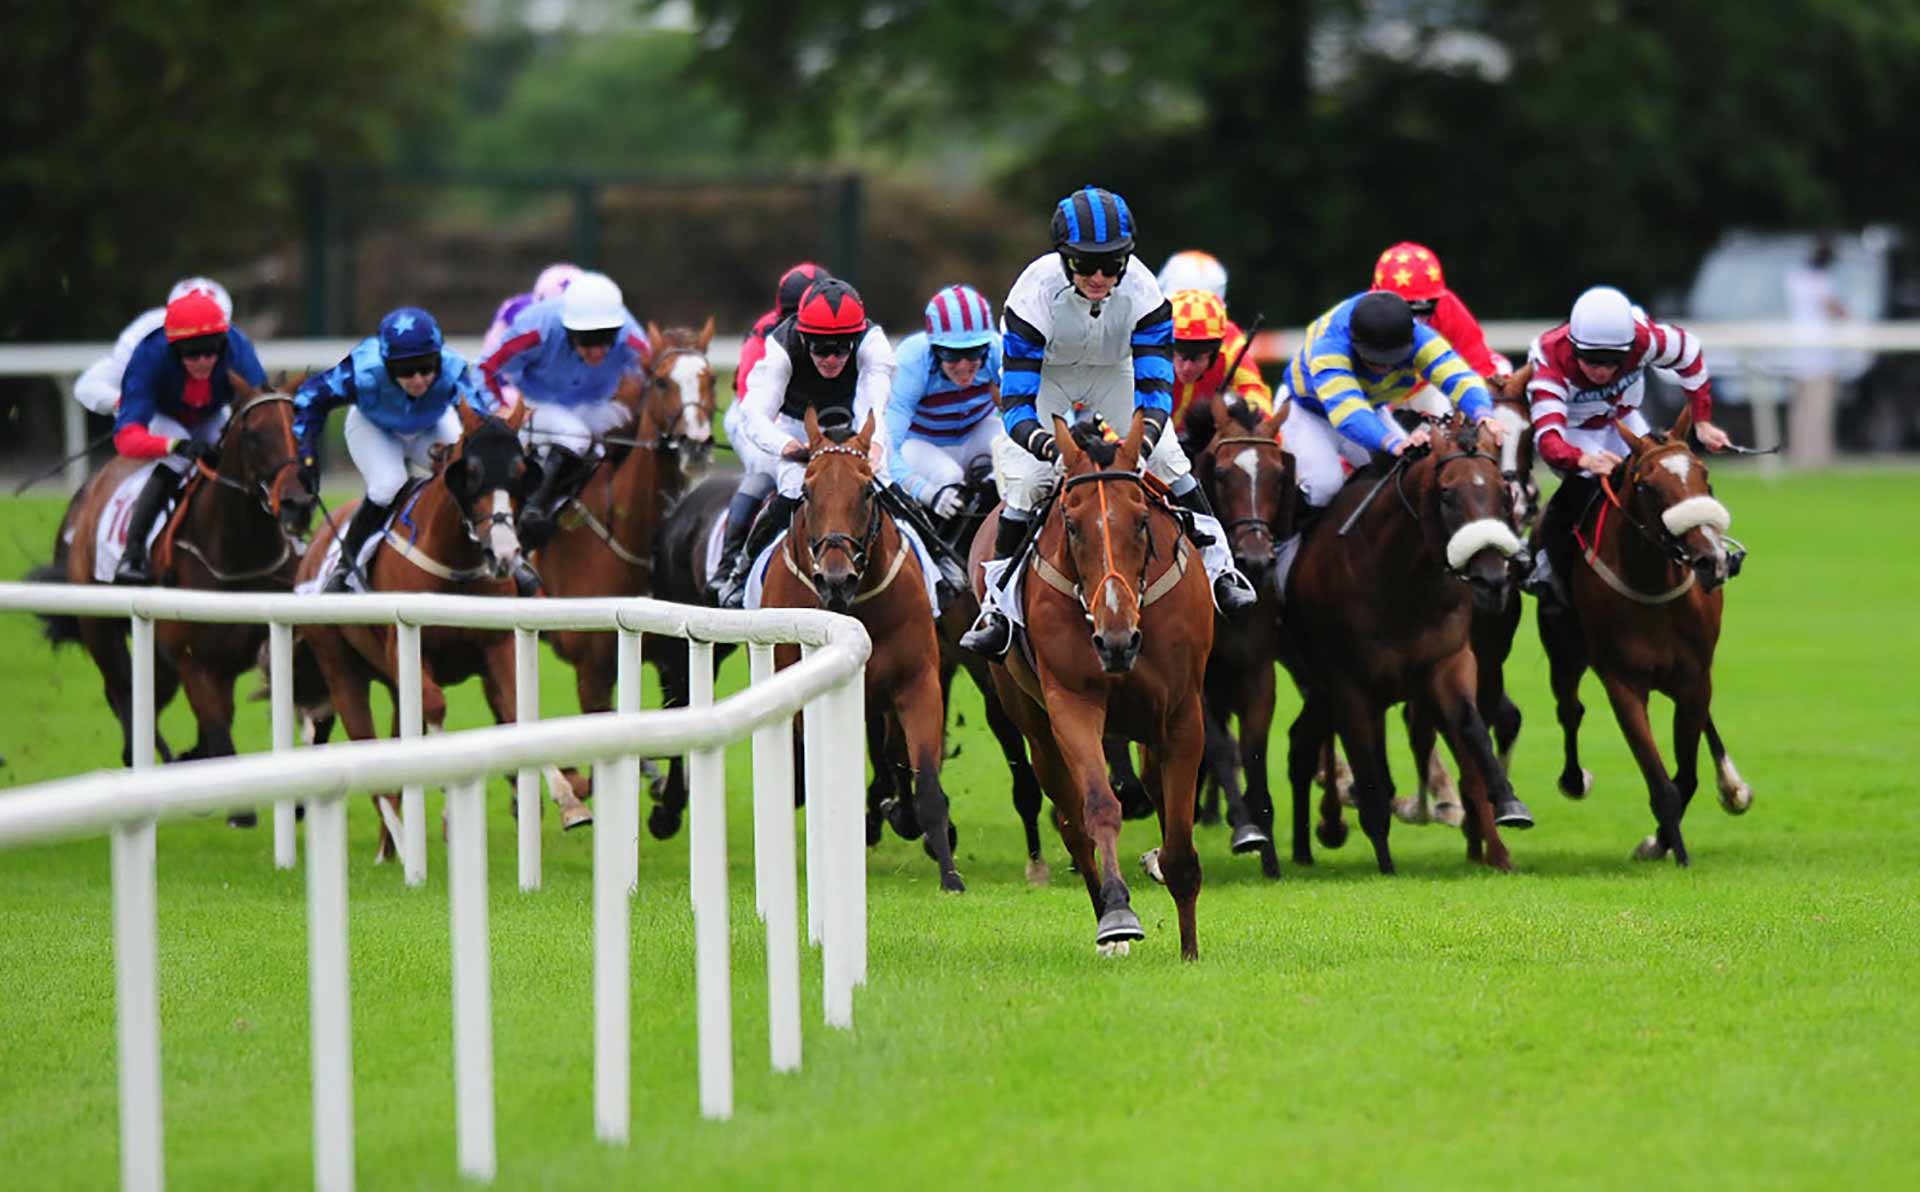 Horse Racing Ireland nominations have been announced